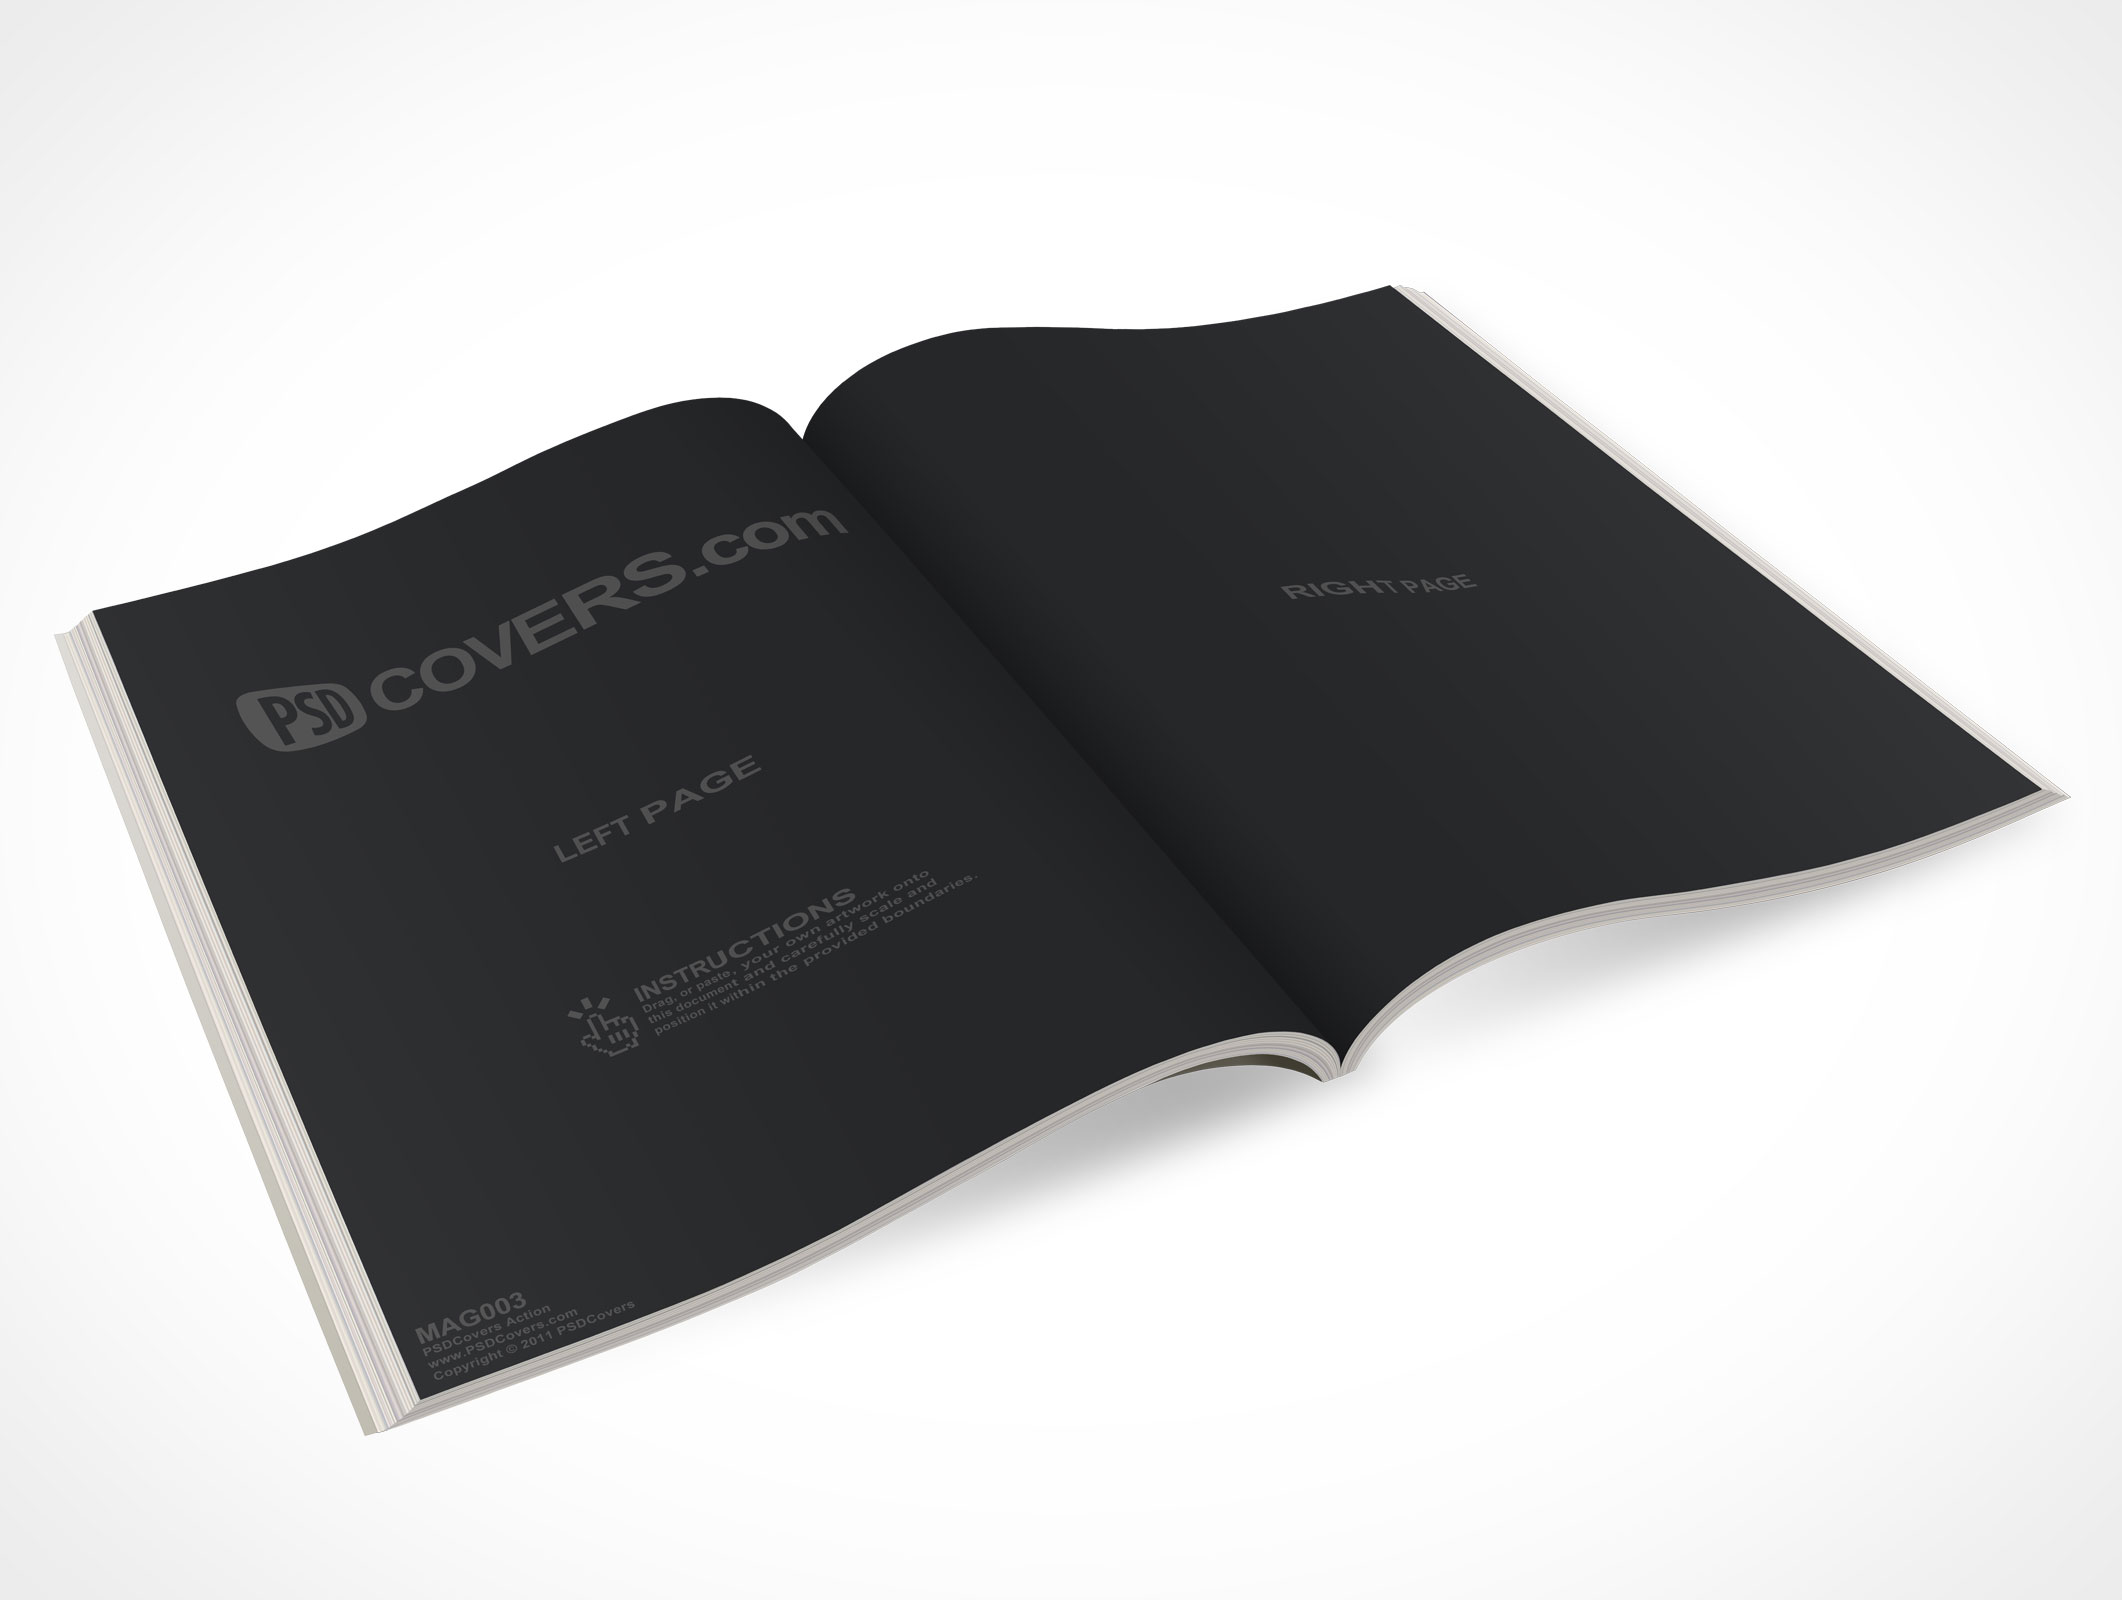 free ebook covers templates - mag003 market your psd mockups for magazine